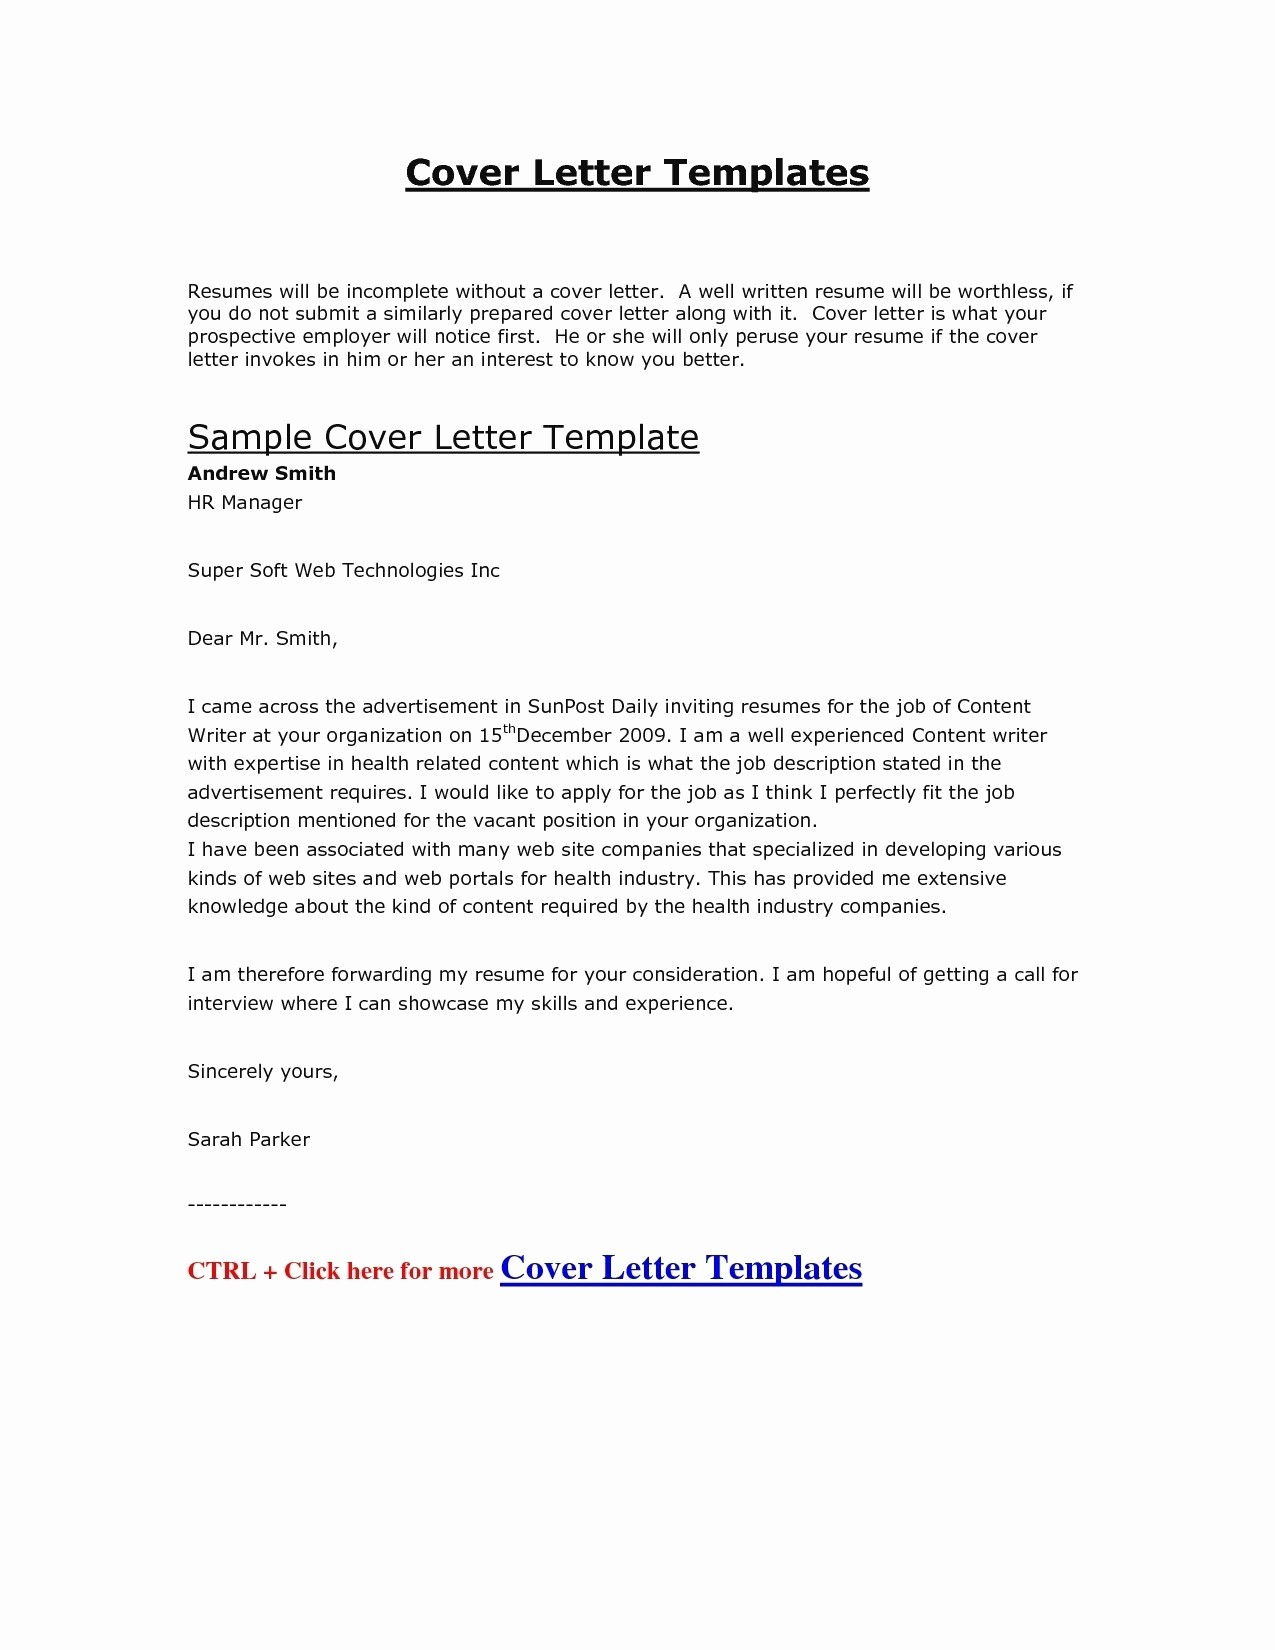 Employment Cover Letter Template - Job Application Letter format Template Copy Cover Letter Template Hr